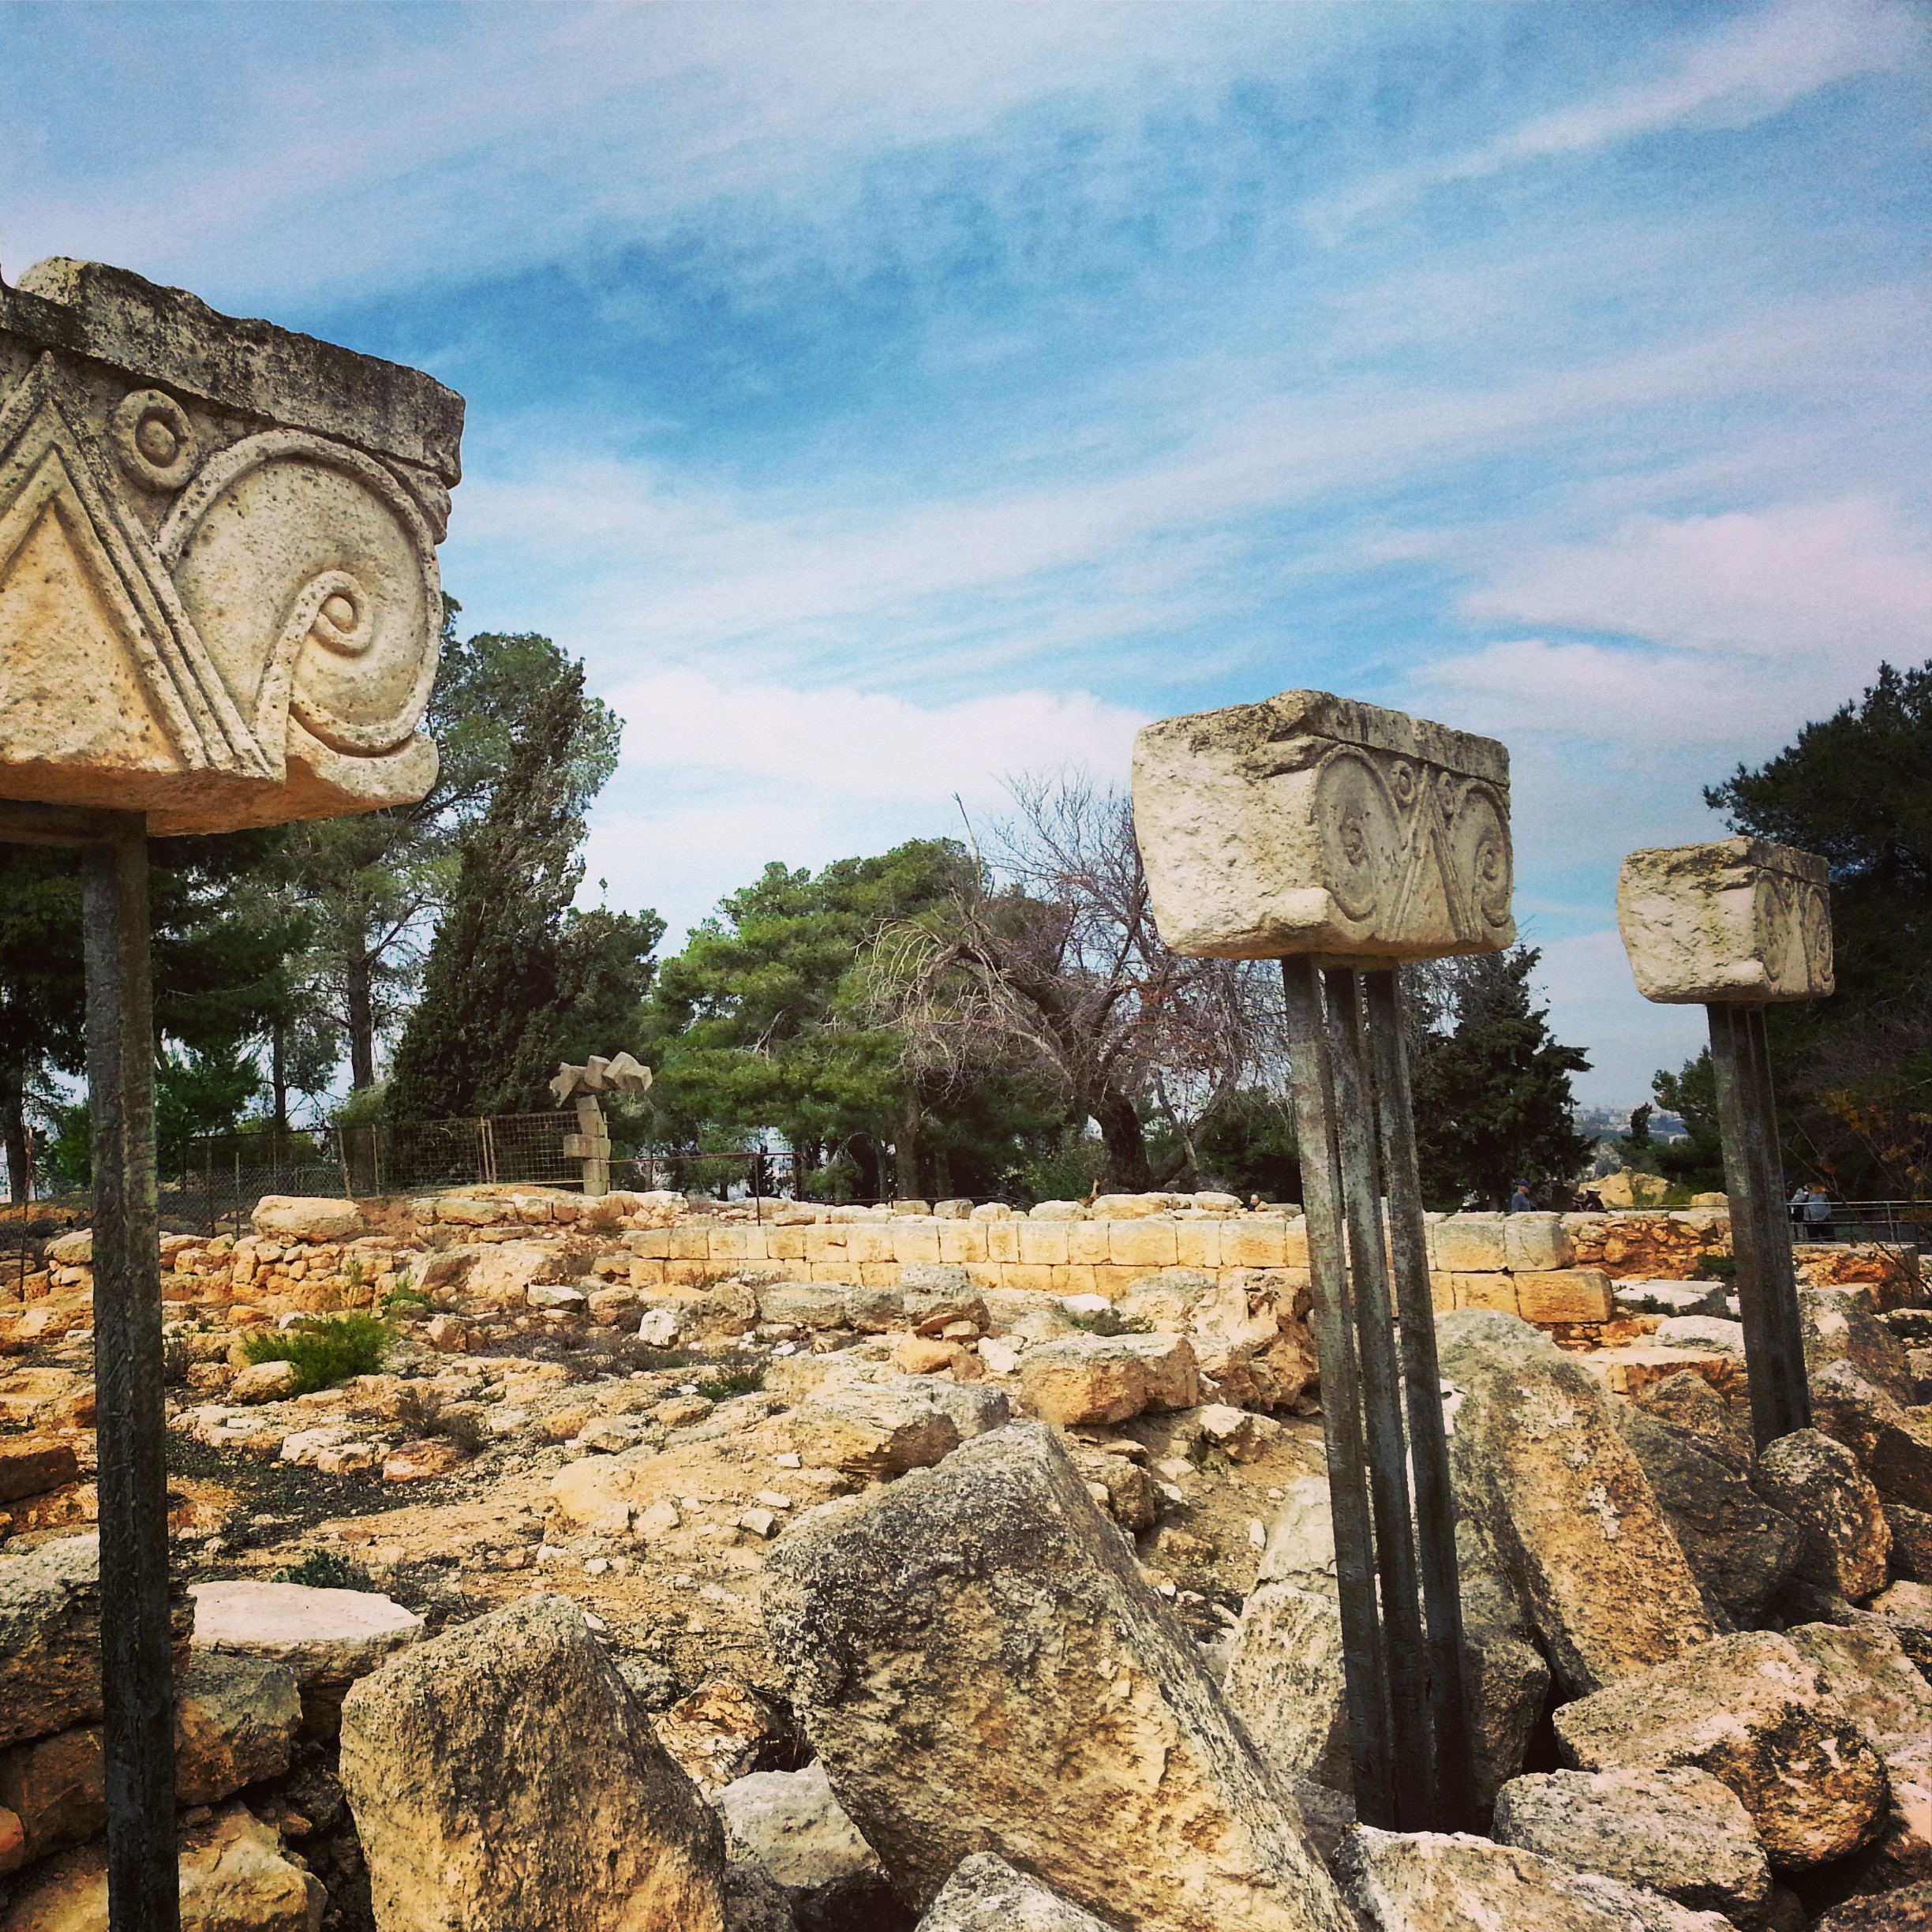 Israelite capitals dating to the 8th century BCE found at Ramat Rachel